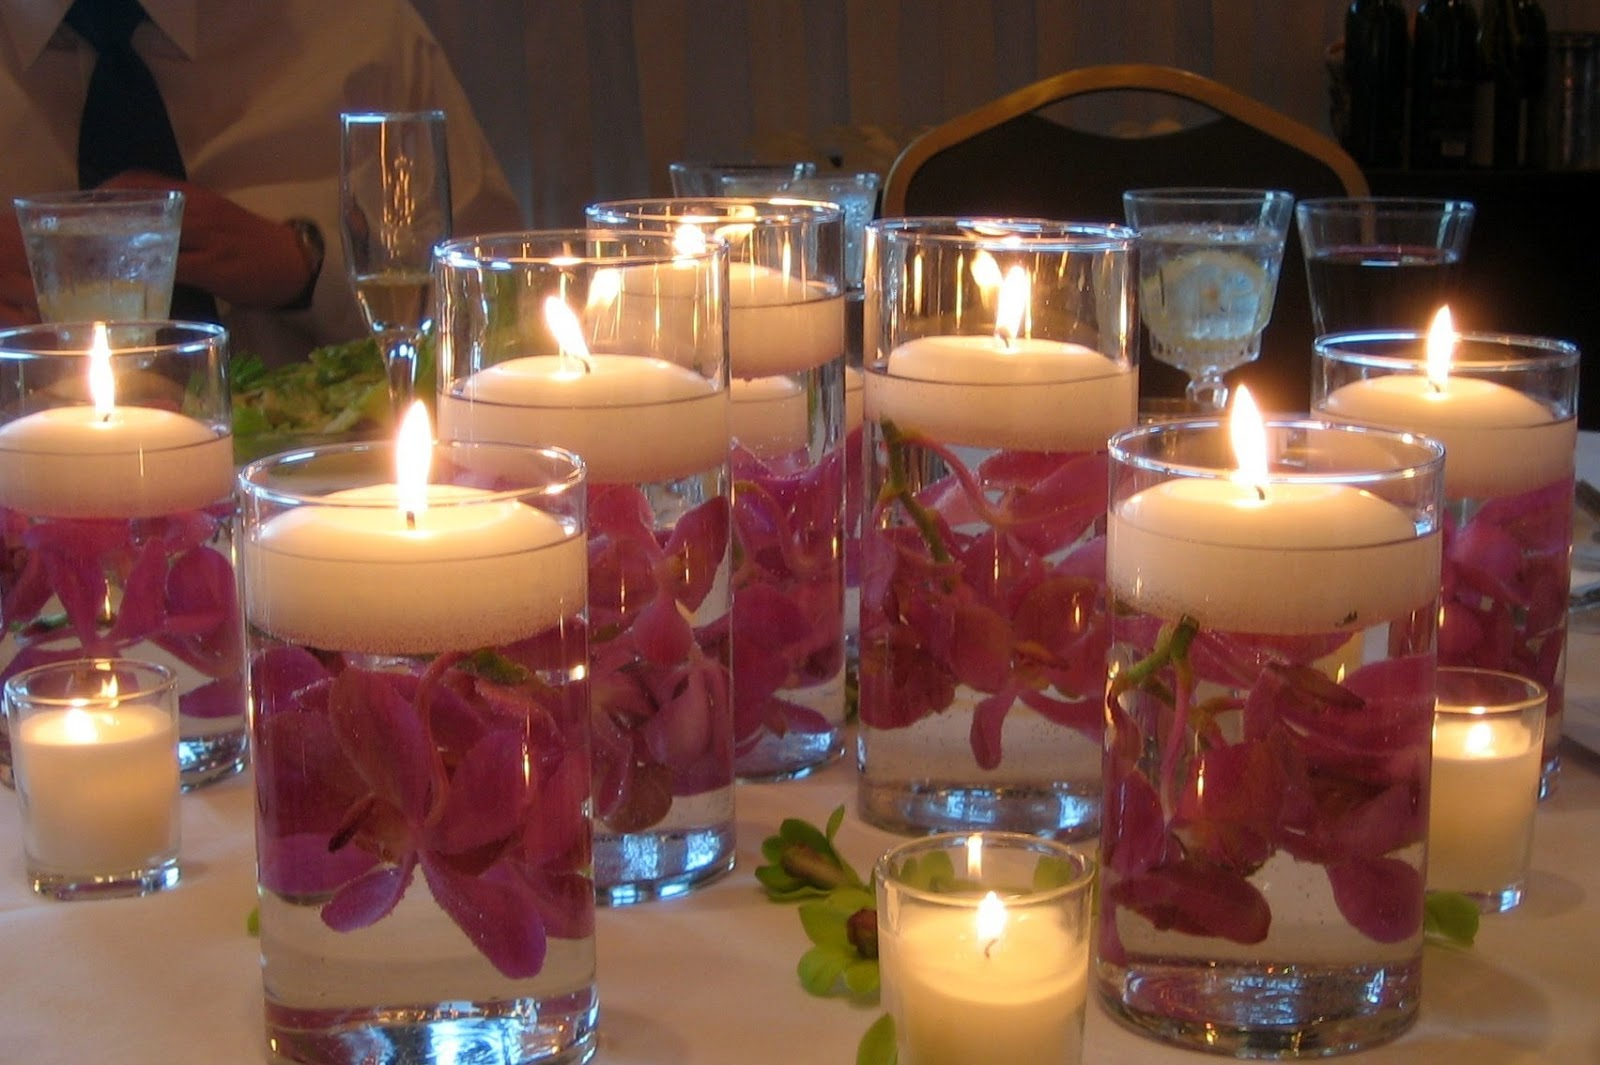 Dining table candle centerpieces - Floating Candles Centerpiece